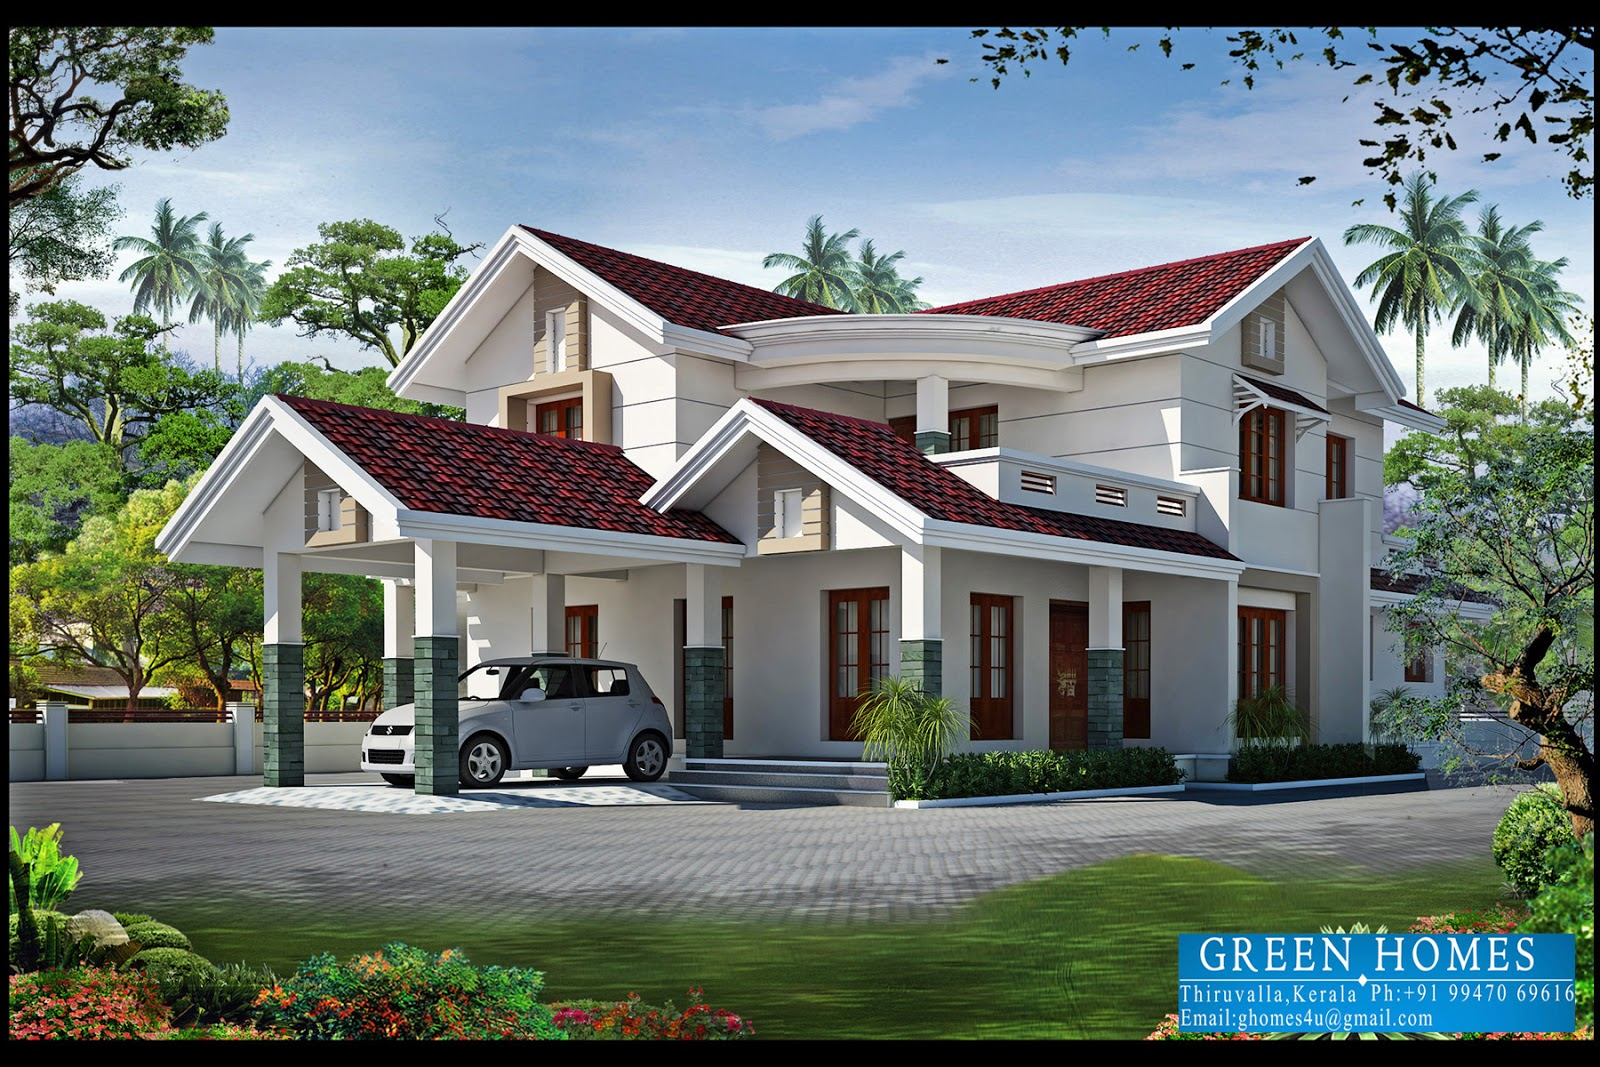 Green homes 4bhk kerala home design 2550 for Latest model house design